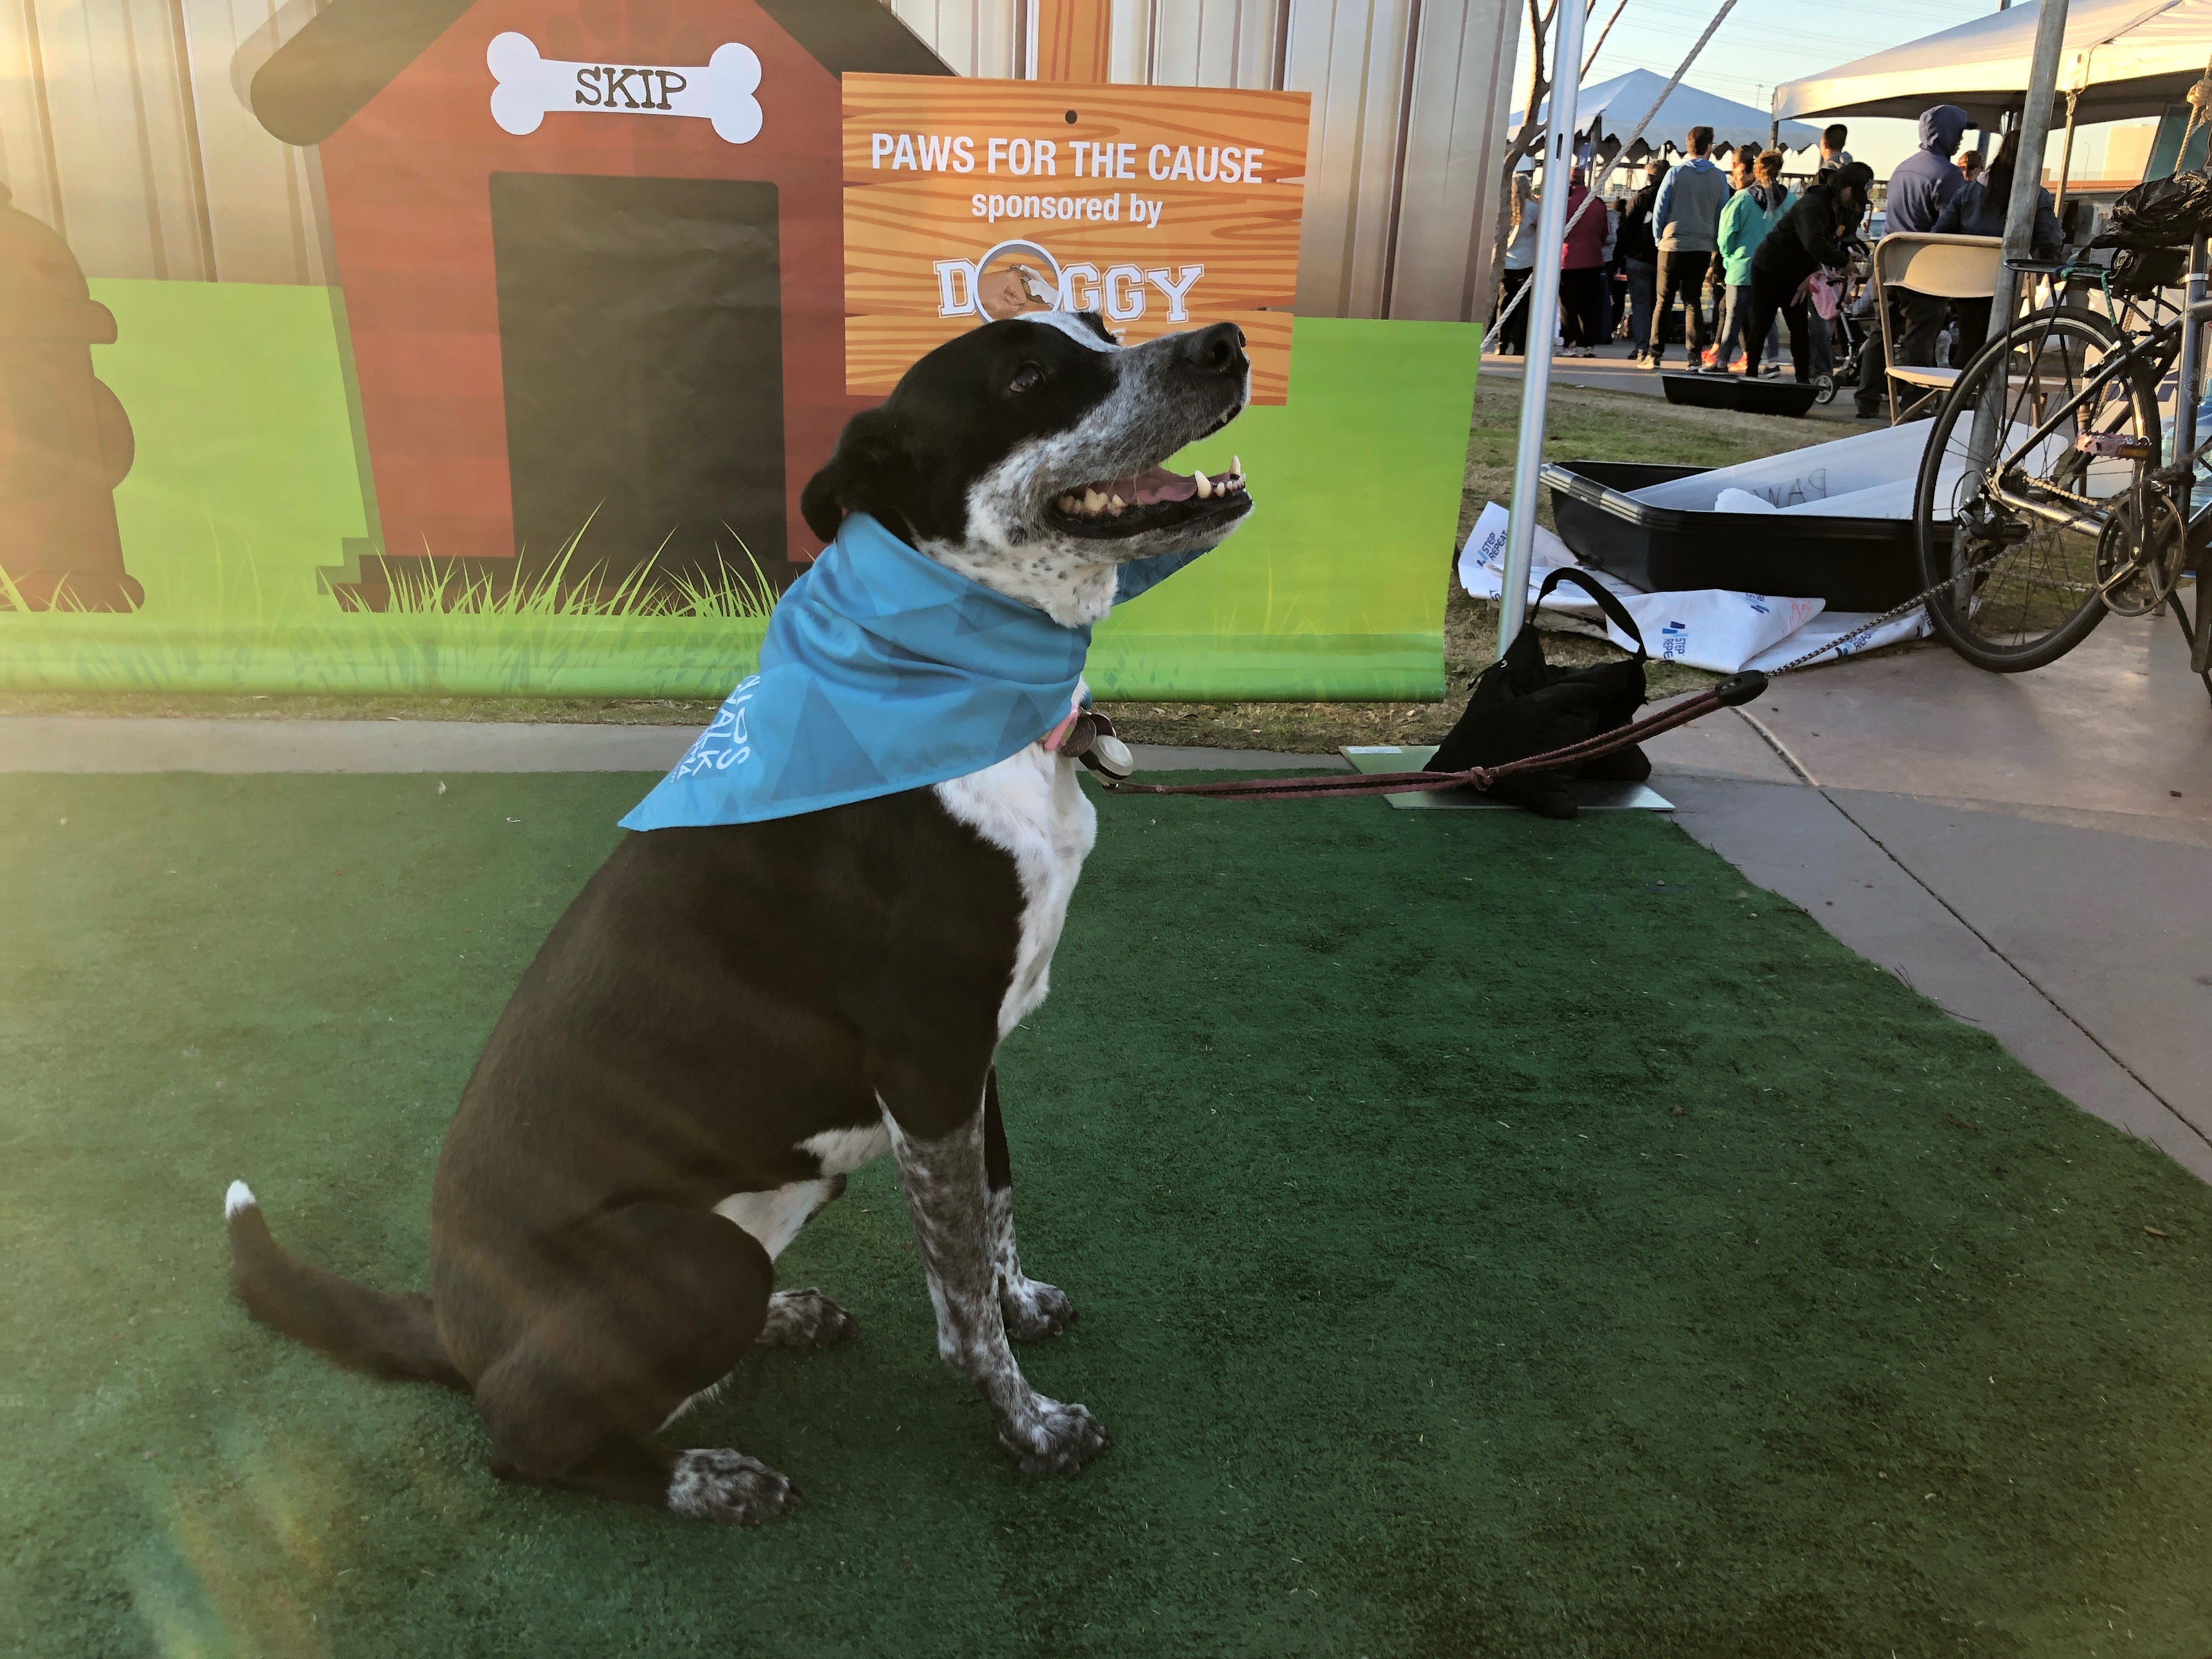 Audrey Pupburn sits for a photo outside of the Paws for the Cause stand at the AIDS Walk Arizona.